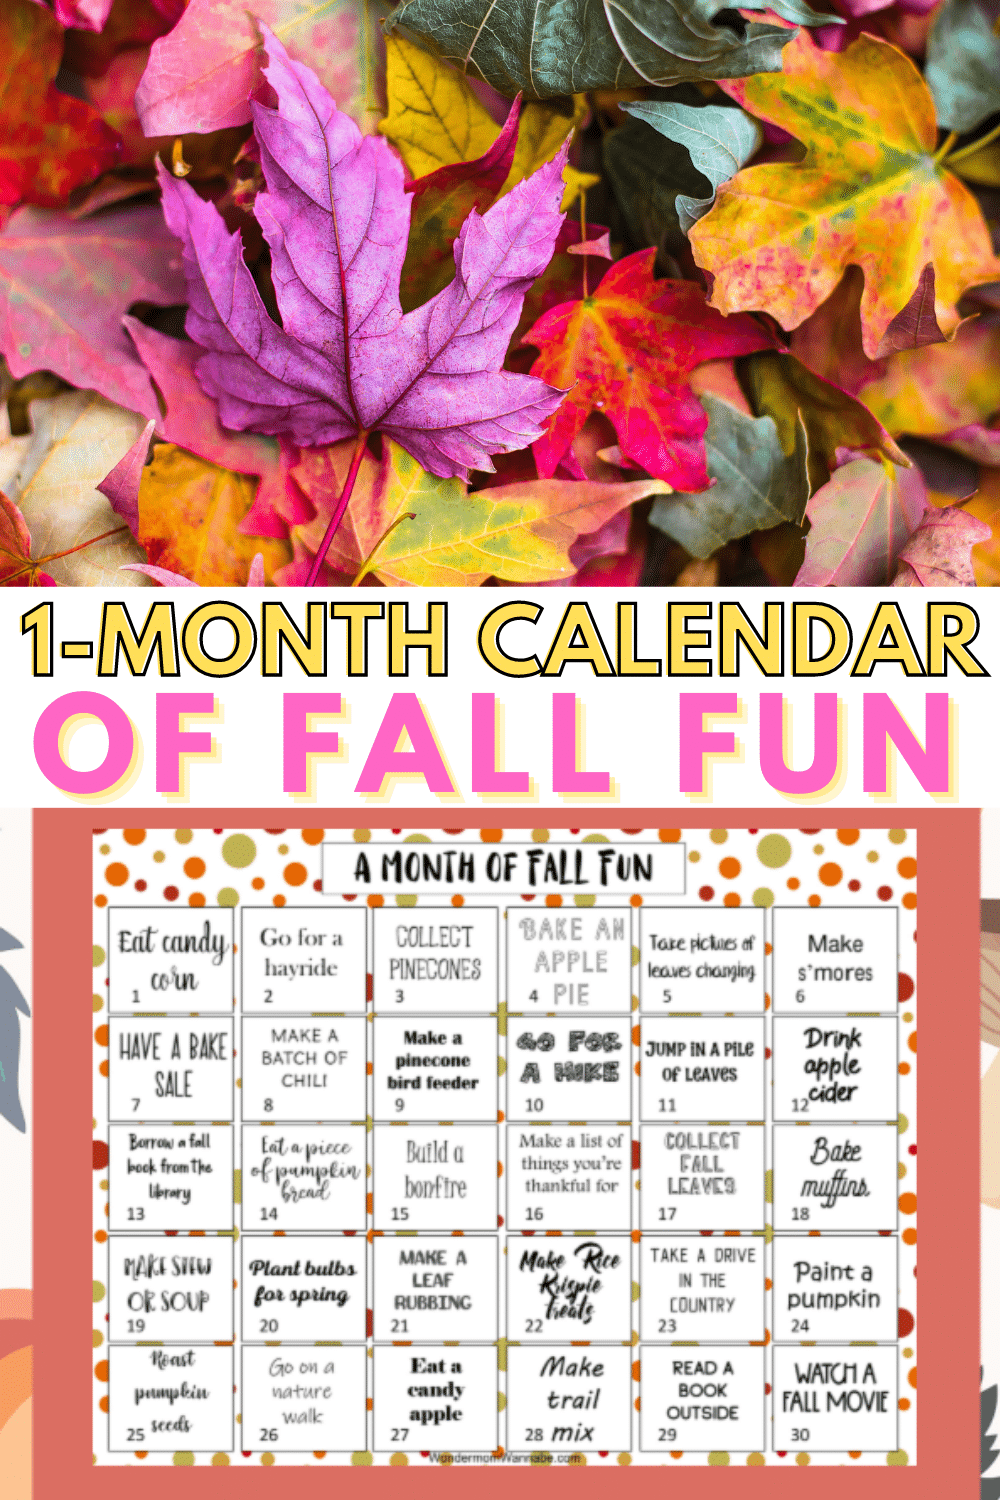 This printable one month calendar of fall activities for kids is the perfect way to have a memorable season full of fun as a family. #printables #fall #kidsactivities via @wondermomwannab